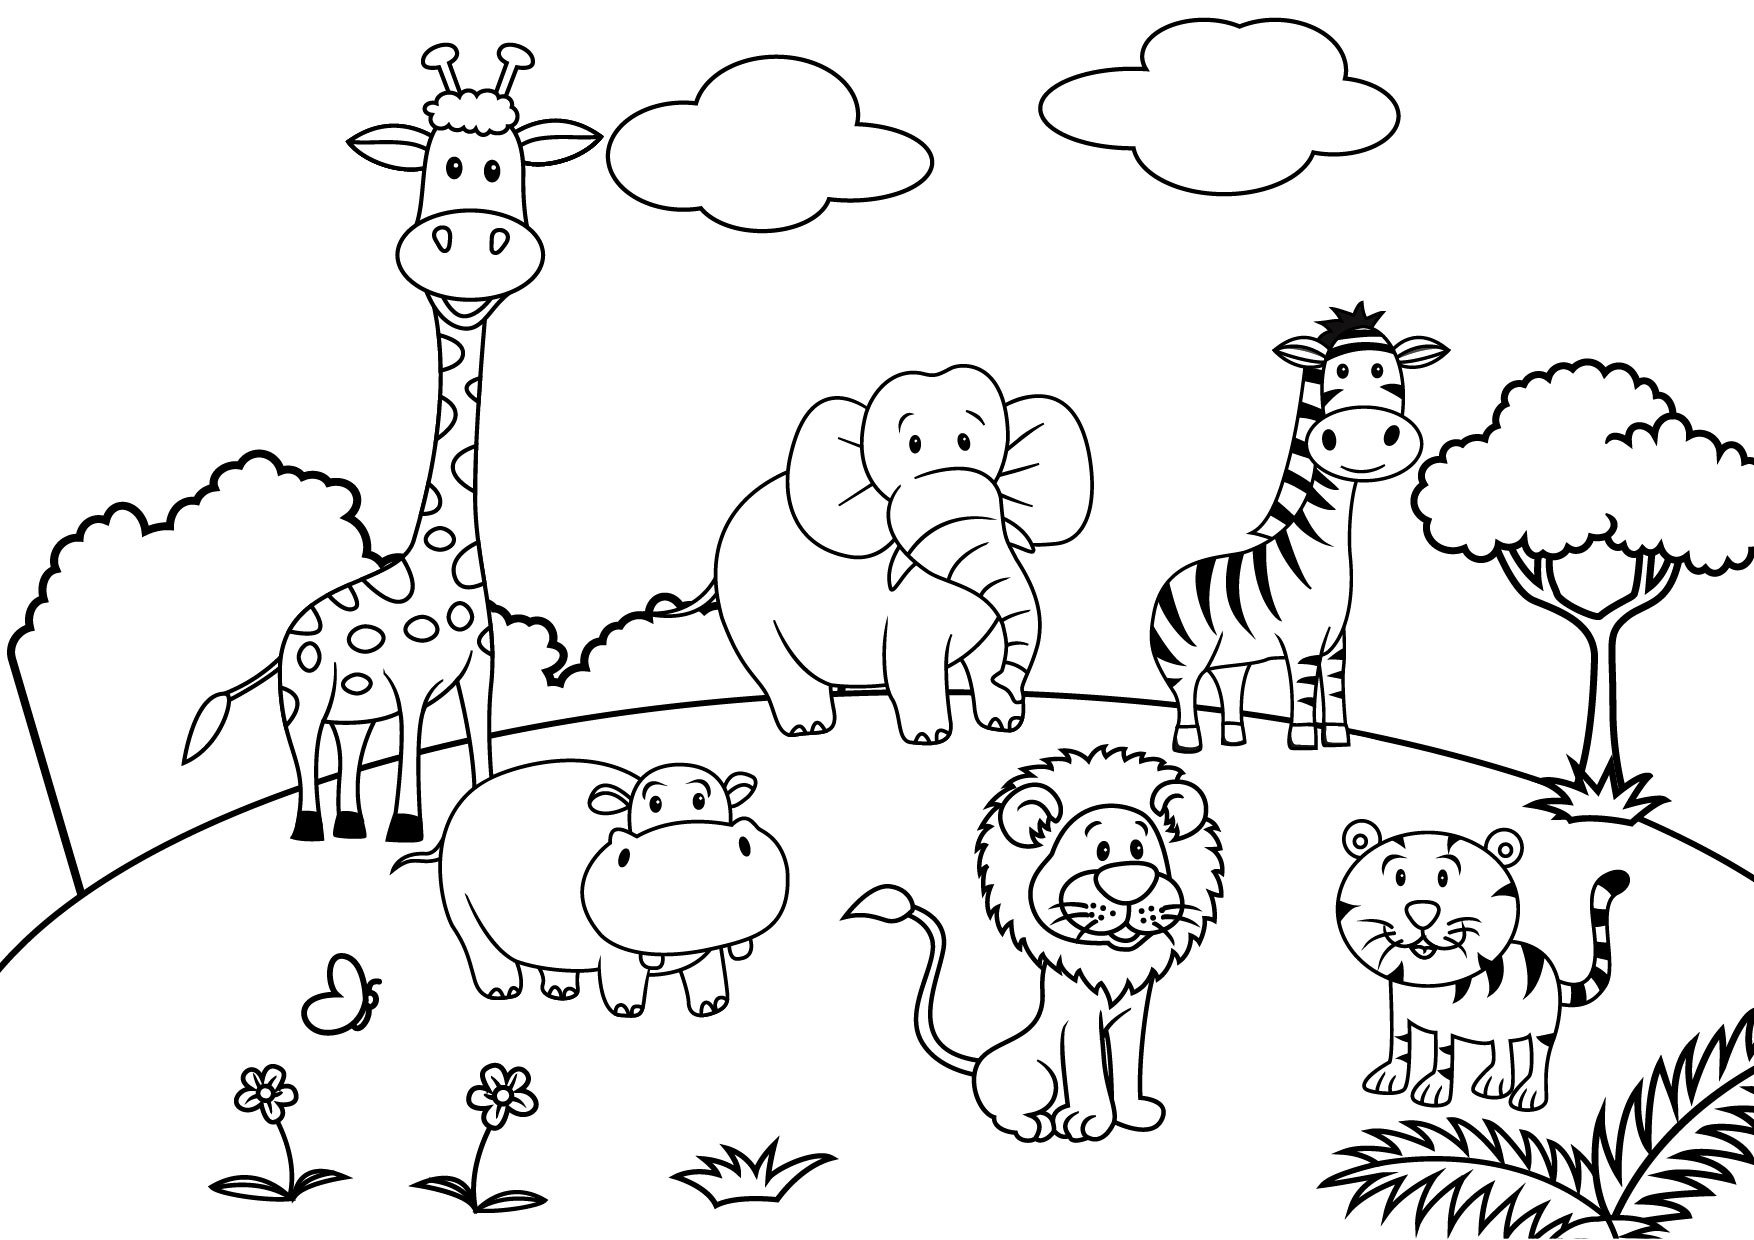 Playground Equipment Coloring Pages at GetColorings.com